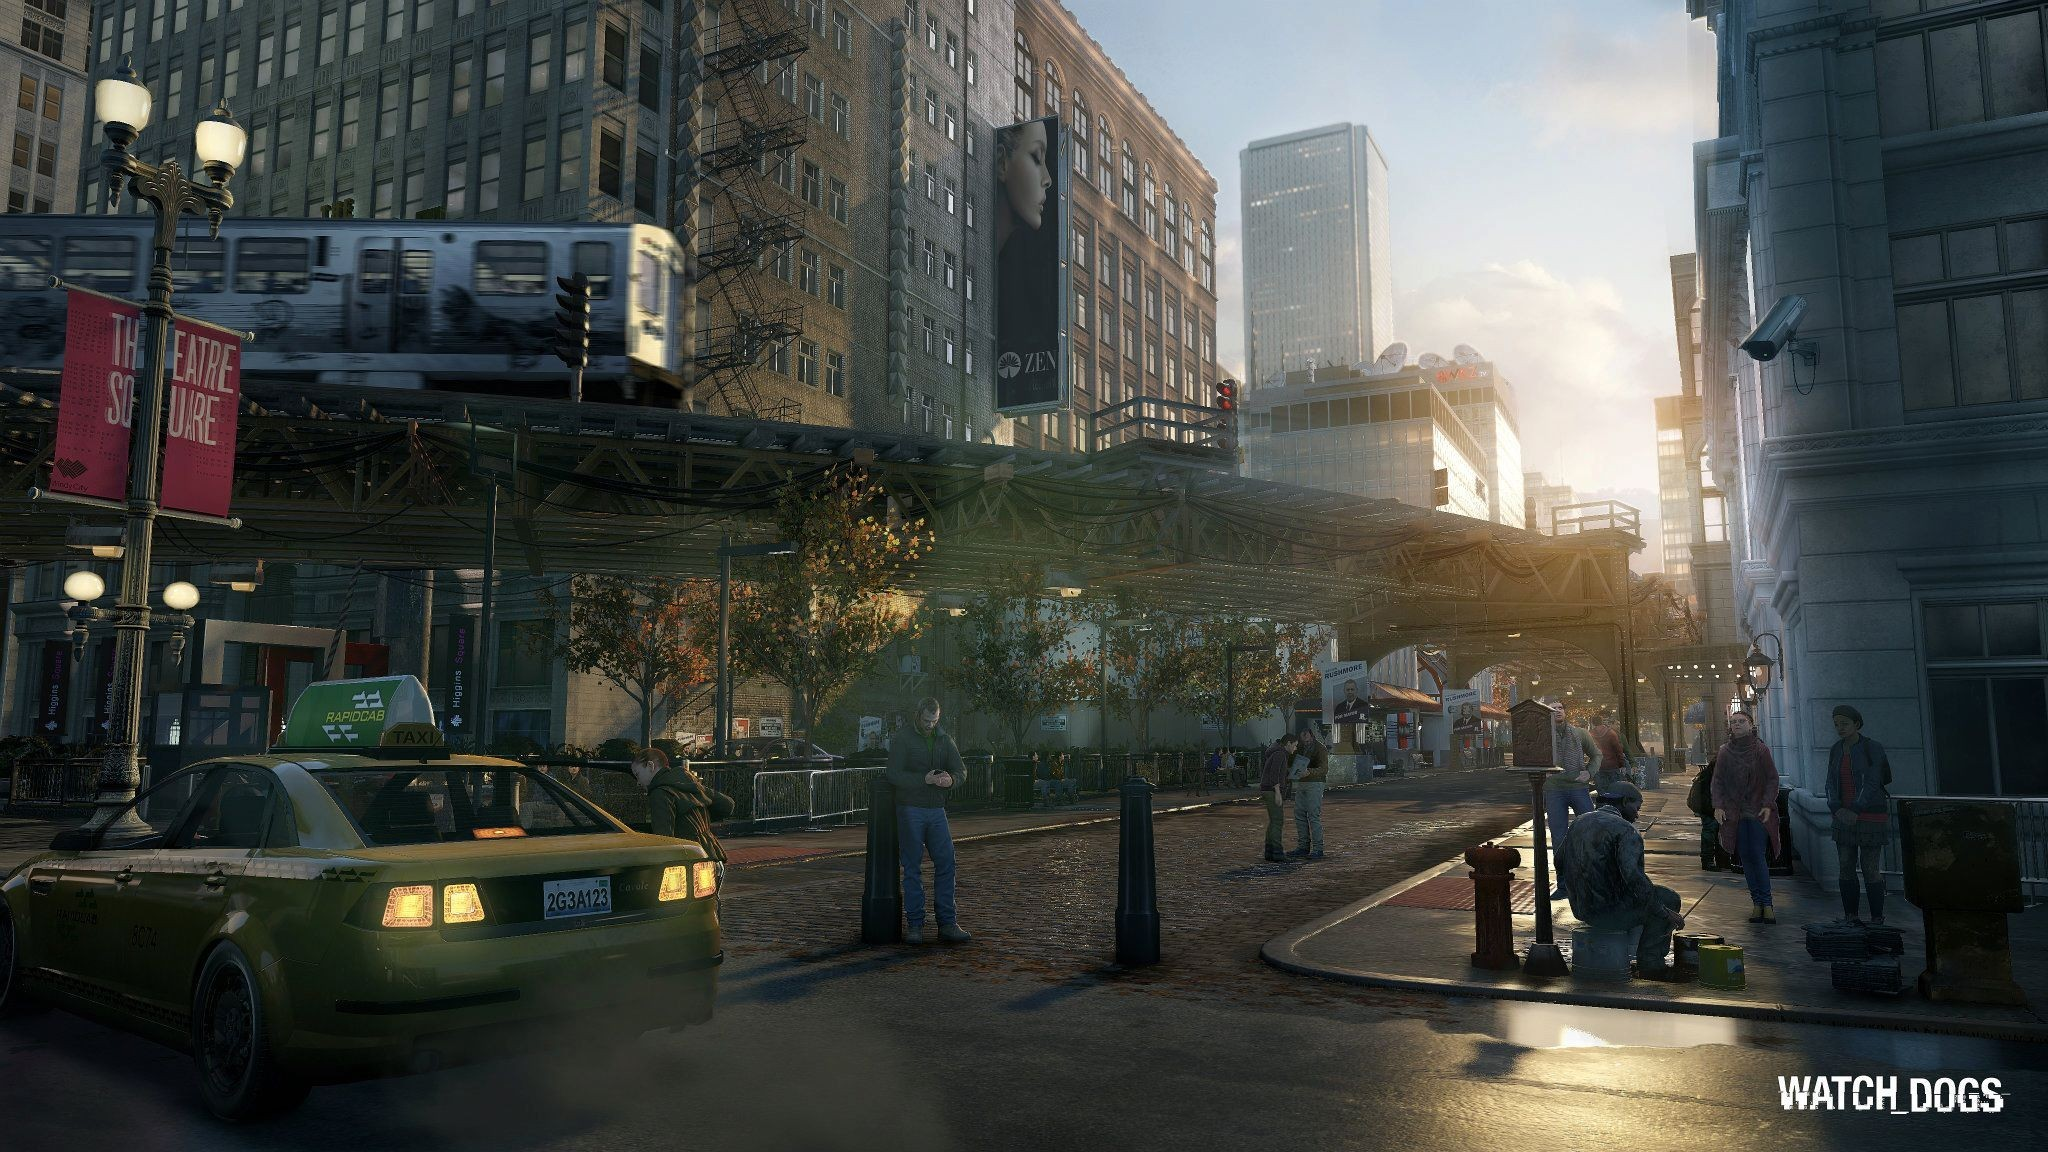 Free Download Fonds Dcran Watch Dogs Tous Les Wallpapers